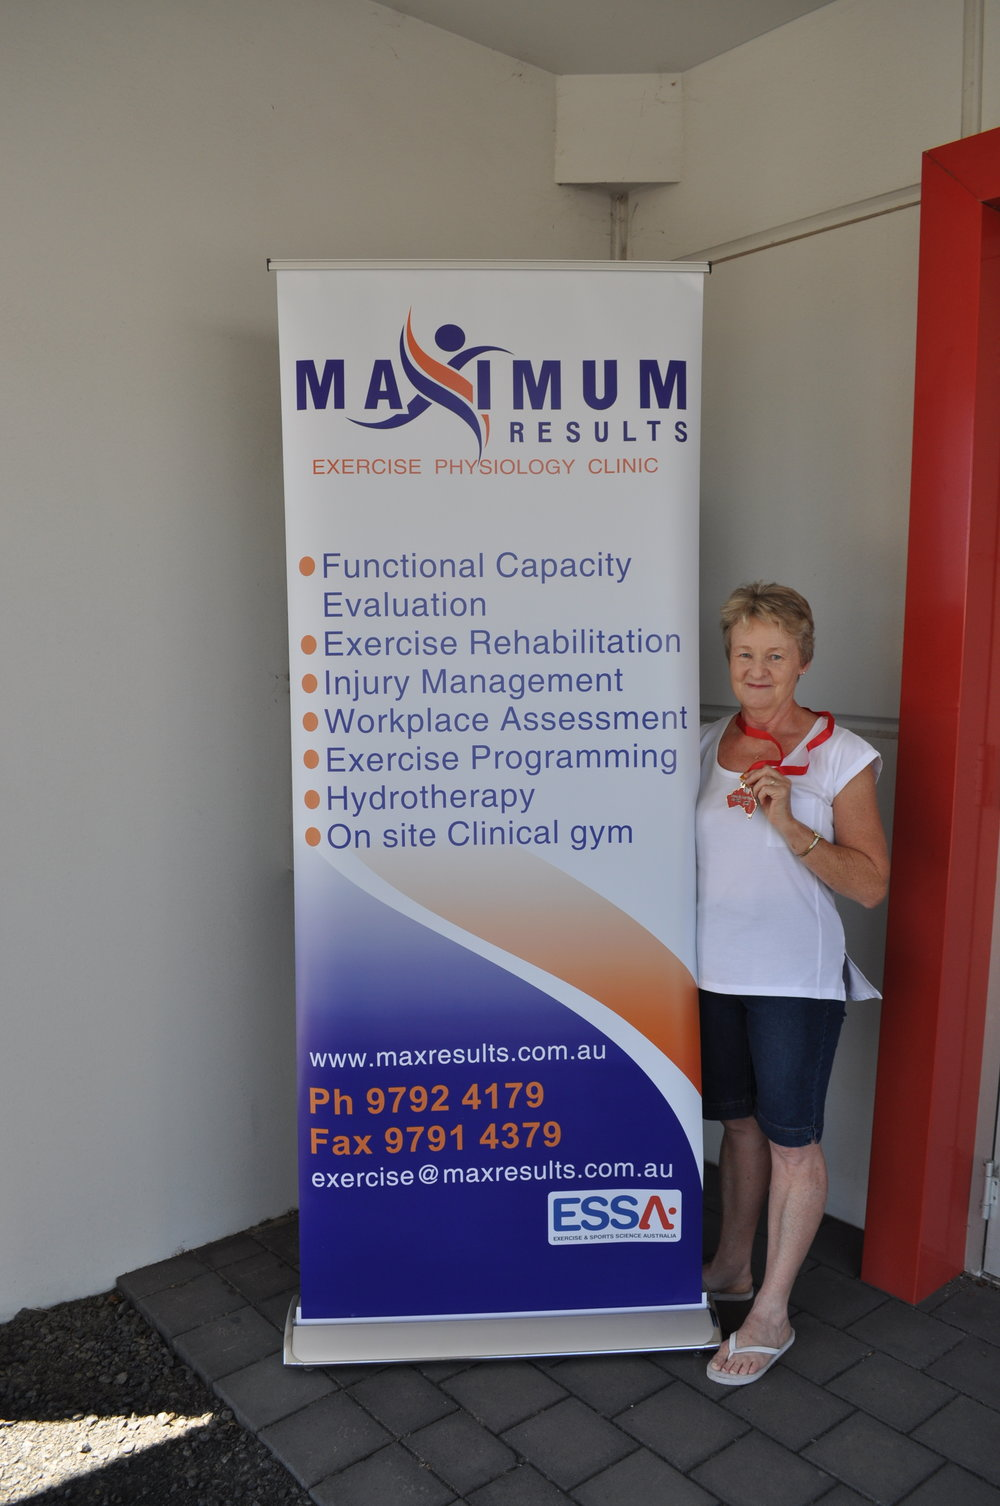 Pattie Milligan - A huge congratulations to Pattie Milligan for completing the Australia Day Ultra 50km Marathon that was held in Australind on the 19th of January 2018. Finishing 12th overall with an outstanding time of 6hrs 1min and 12s.Pattie trained three times per week under the professional training of Marg Rhodes